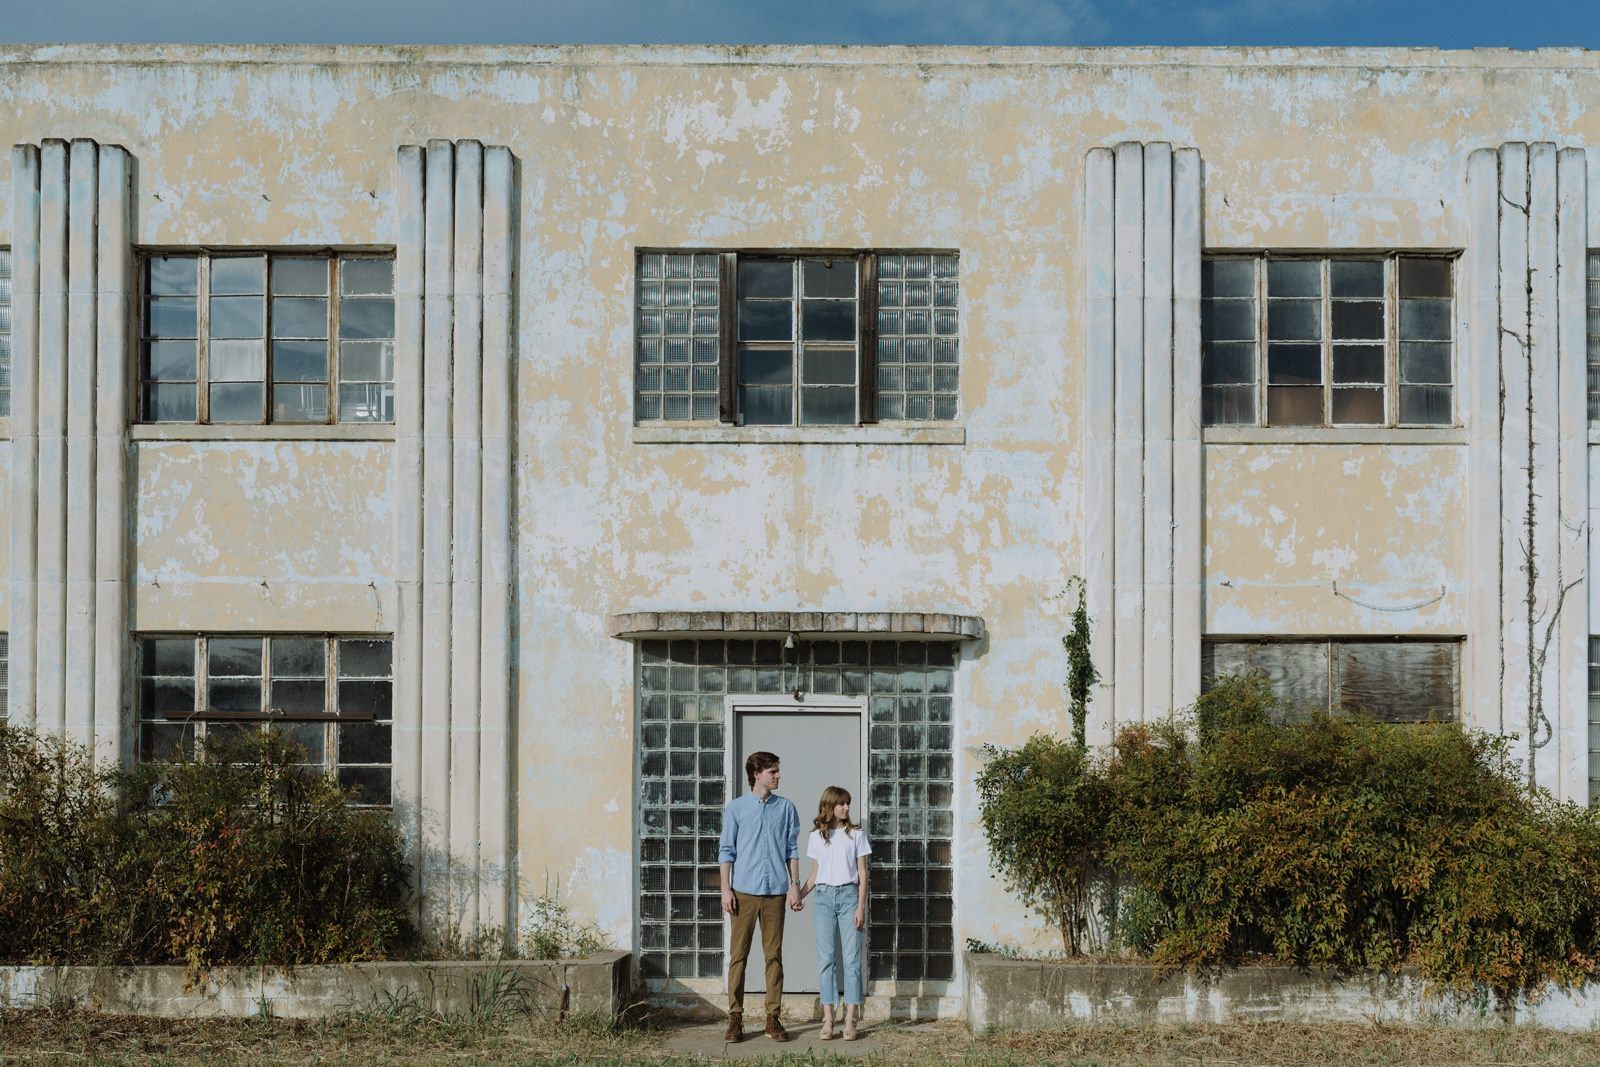 Art deco revivalist building backdrop for an industrial interior Austin engagement session with a stylish couple